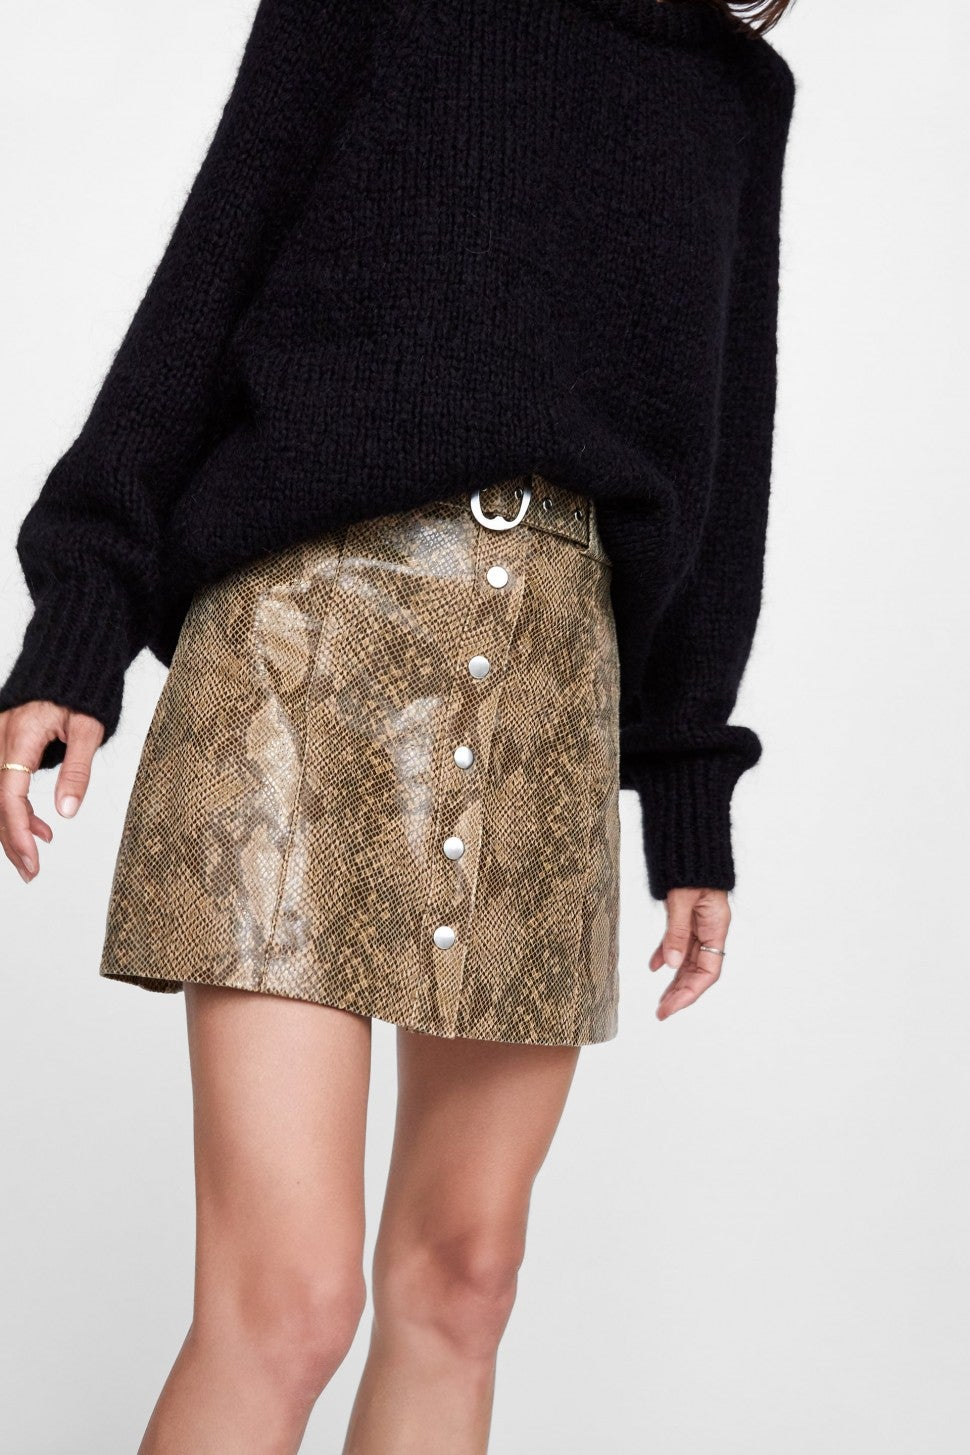 Zara snakeskin mini skirt